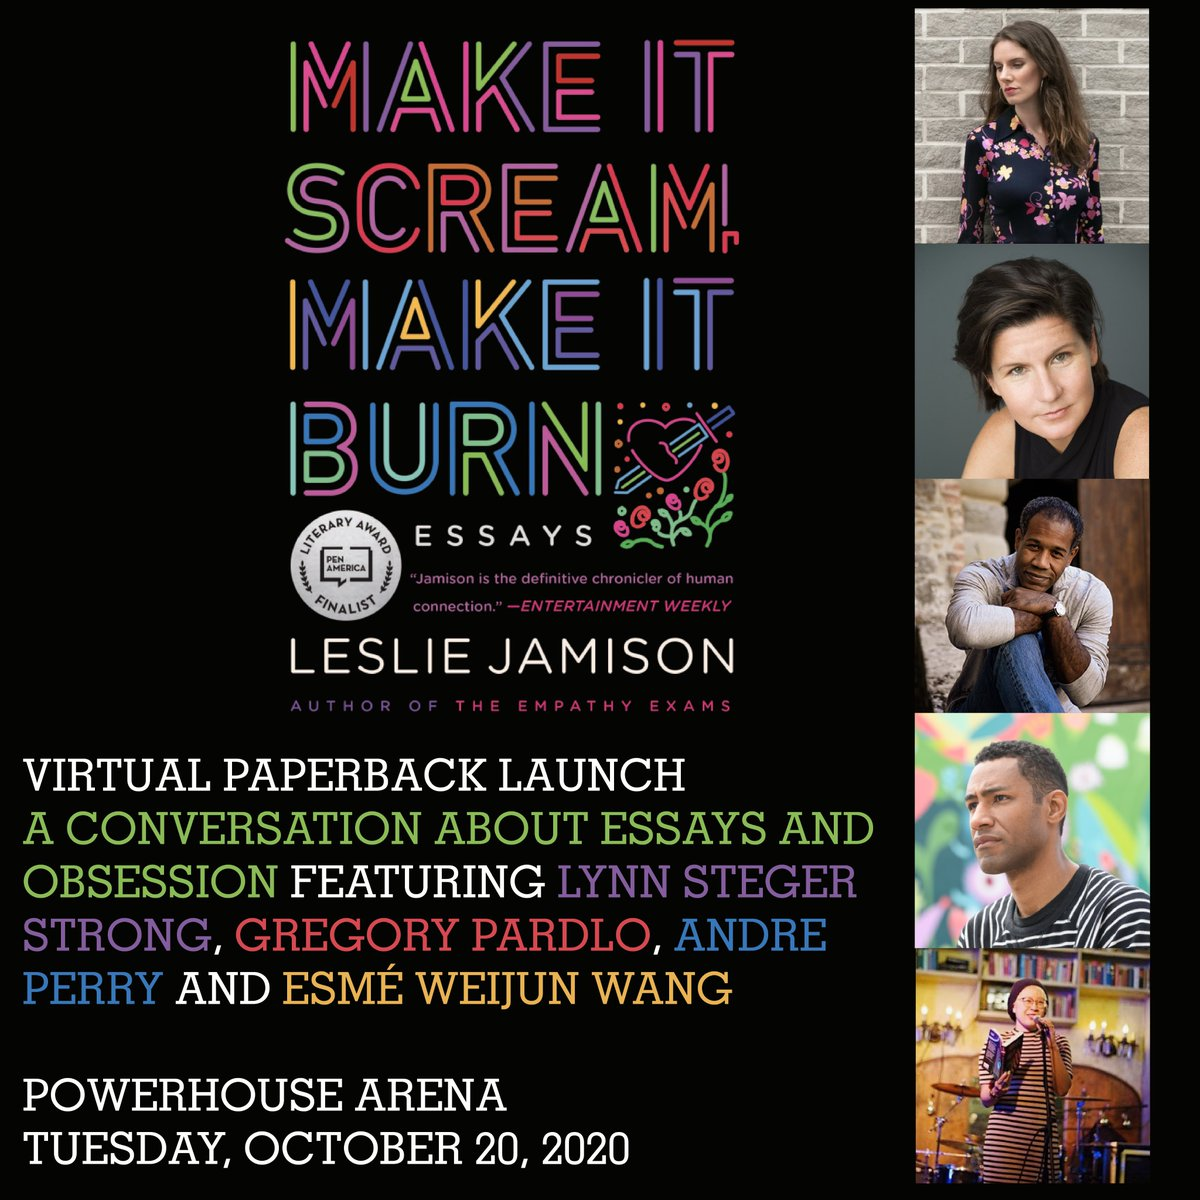 Tomorrow!  Register for the virtual paperback launch of MAKE IT SCREAM, MAKE IT BURN by @lsjamison, with @lynnsstrong, @Pardlo, Andre Perry and @esmewang here: